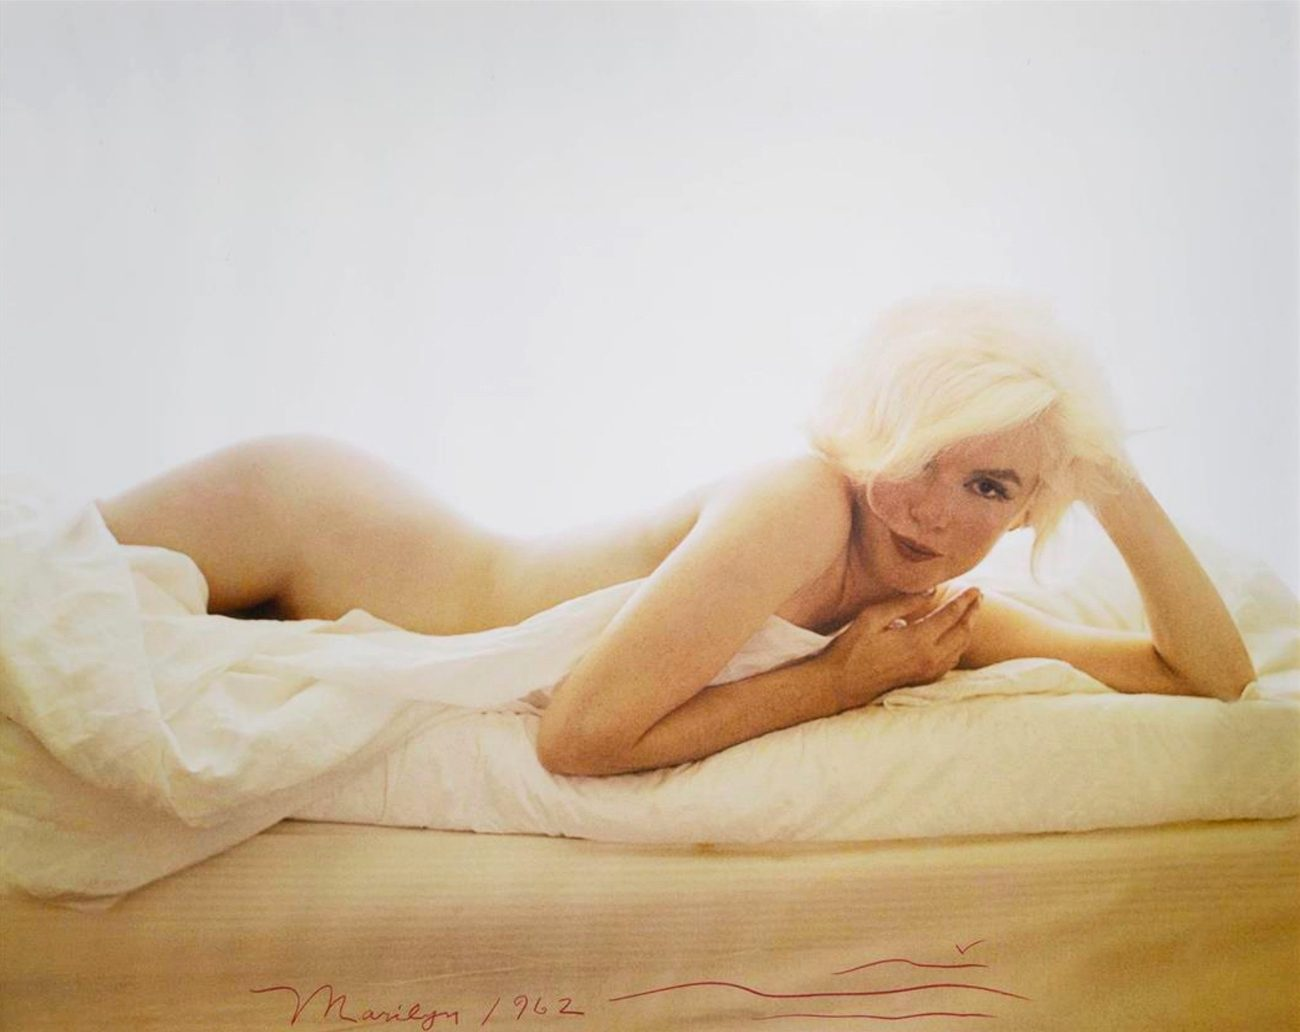 Marilyn Monroe nude on a bed, from The Last Sitting for Vogue